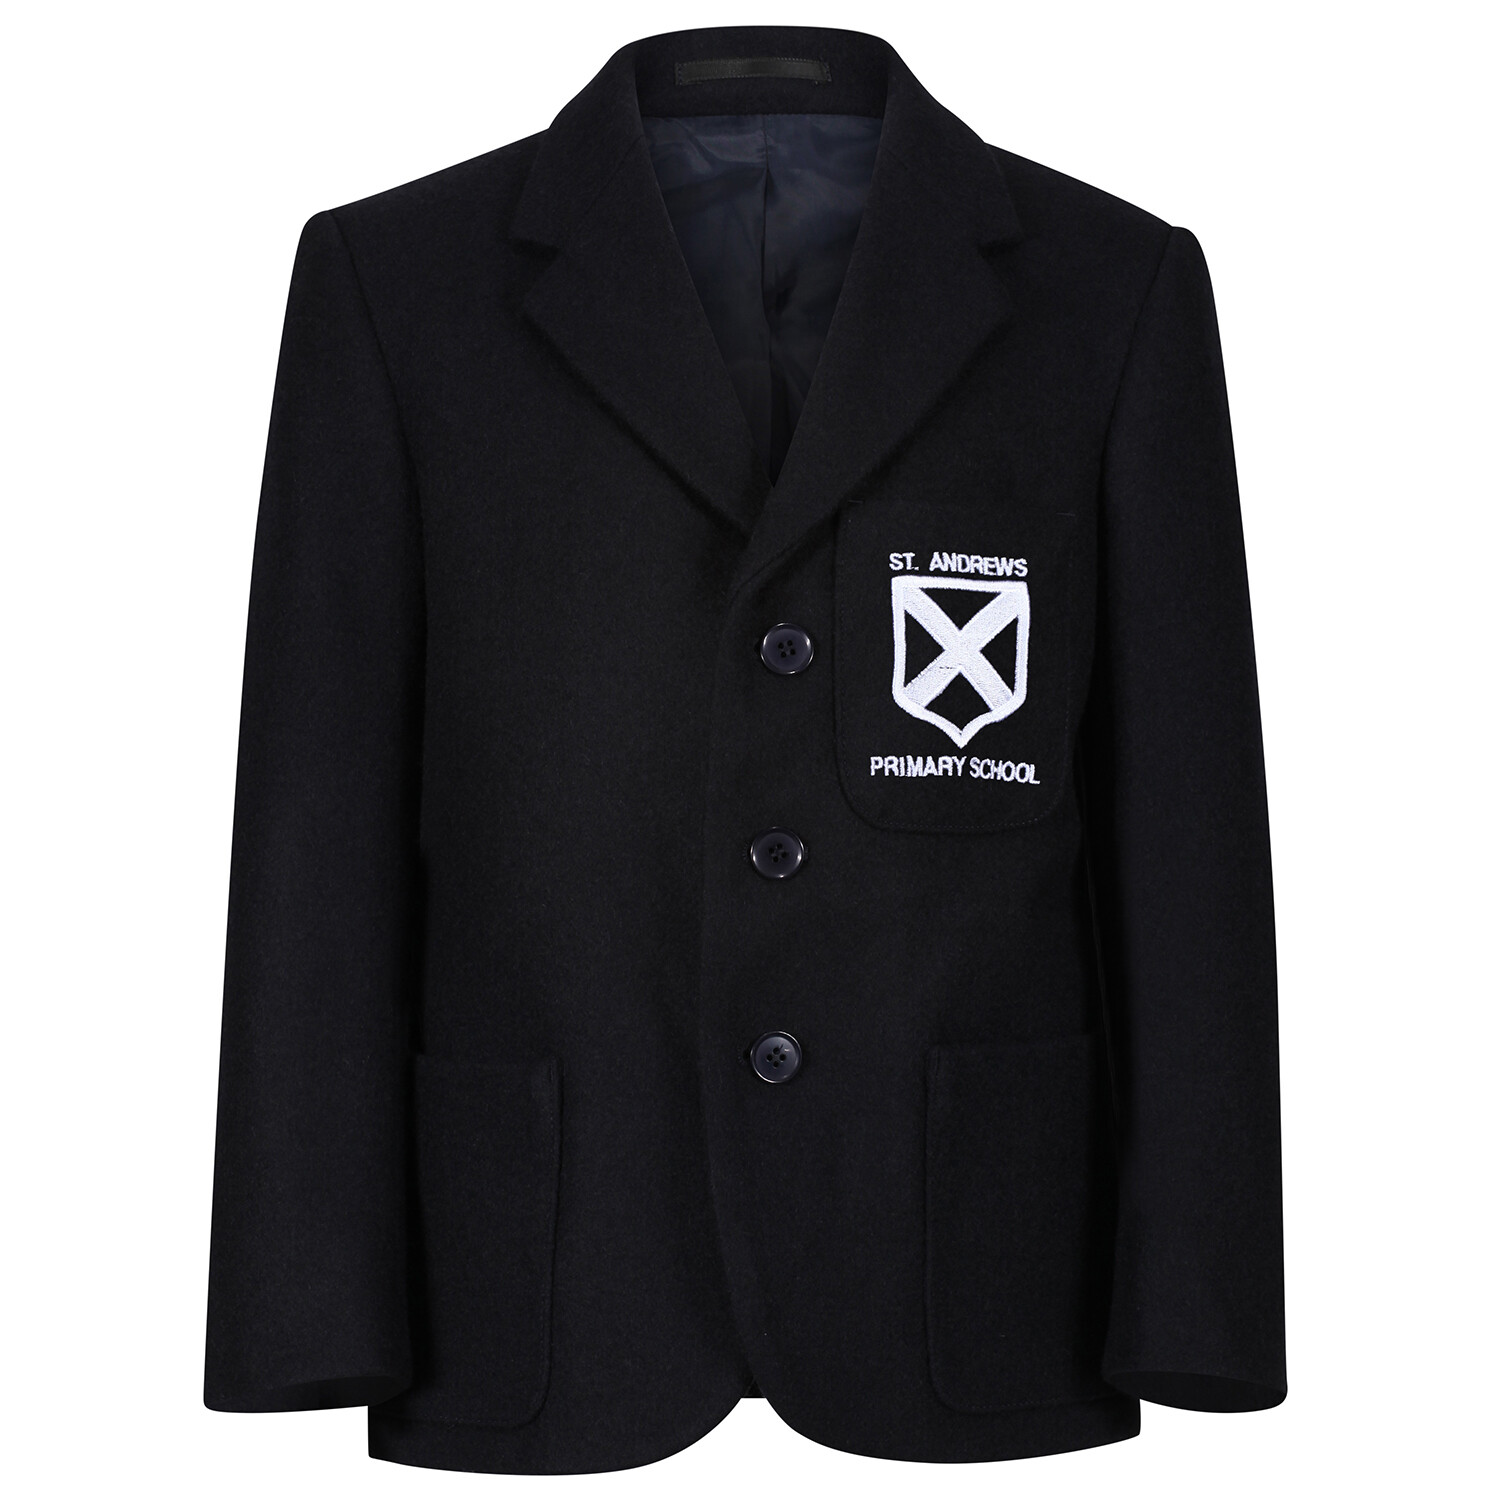 St Andrew's Primary 'Wool' Blazer (Made-to-Order)